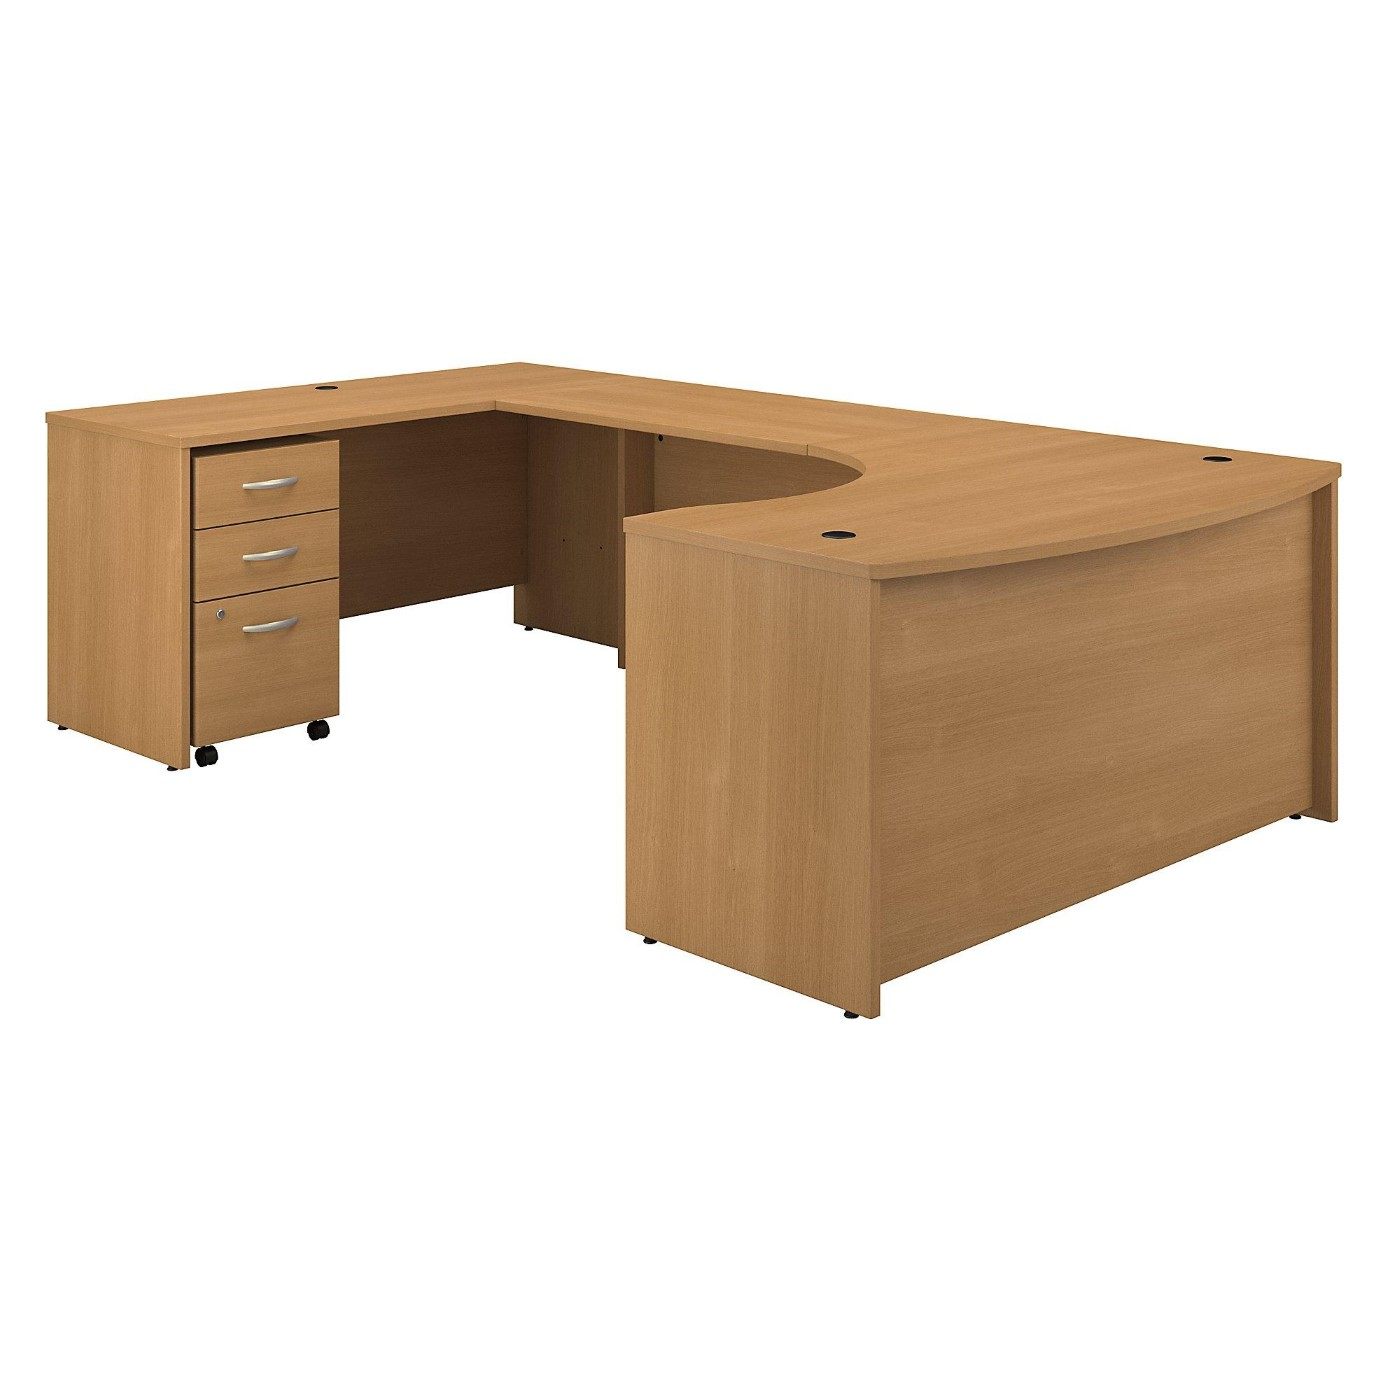 <font color=#c60><b>BUSH BUSINESS FURNITURE SERIES C 60W RIGHT HANDED BOW FRONT U SHAPED DESK WITH MOBILE FILE CABINET. FREE SHIPPING</font></b></font>